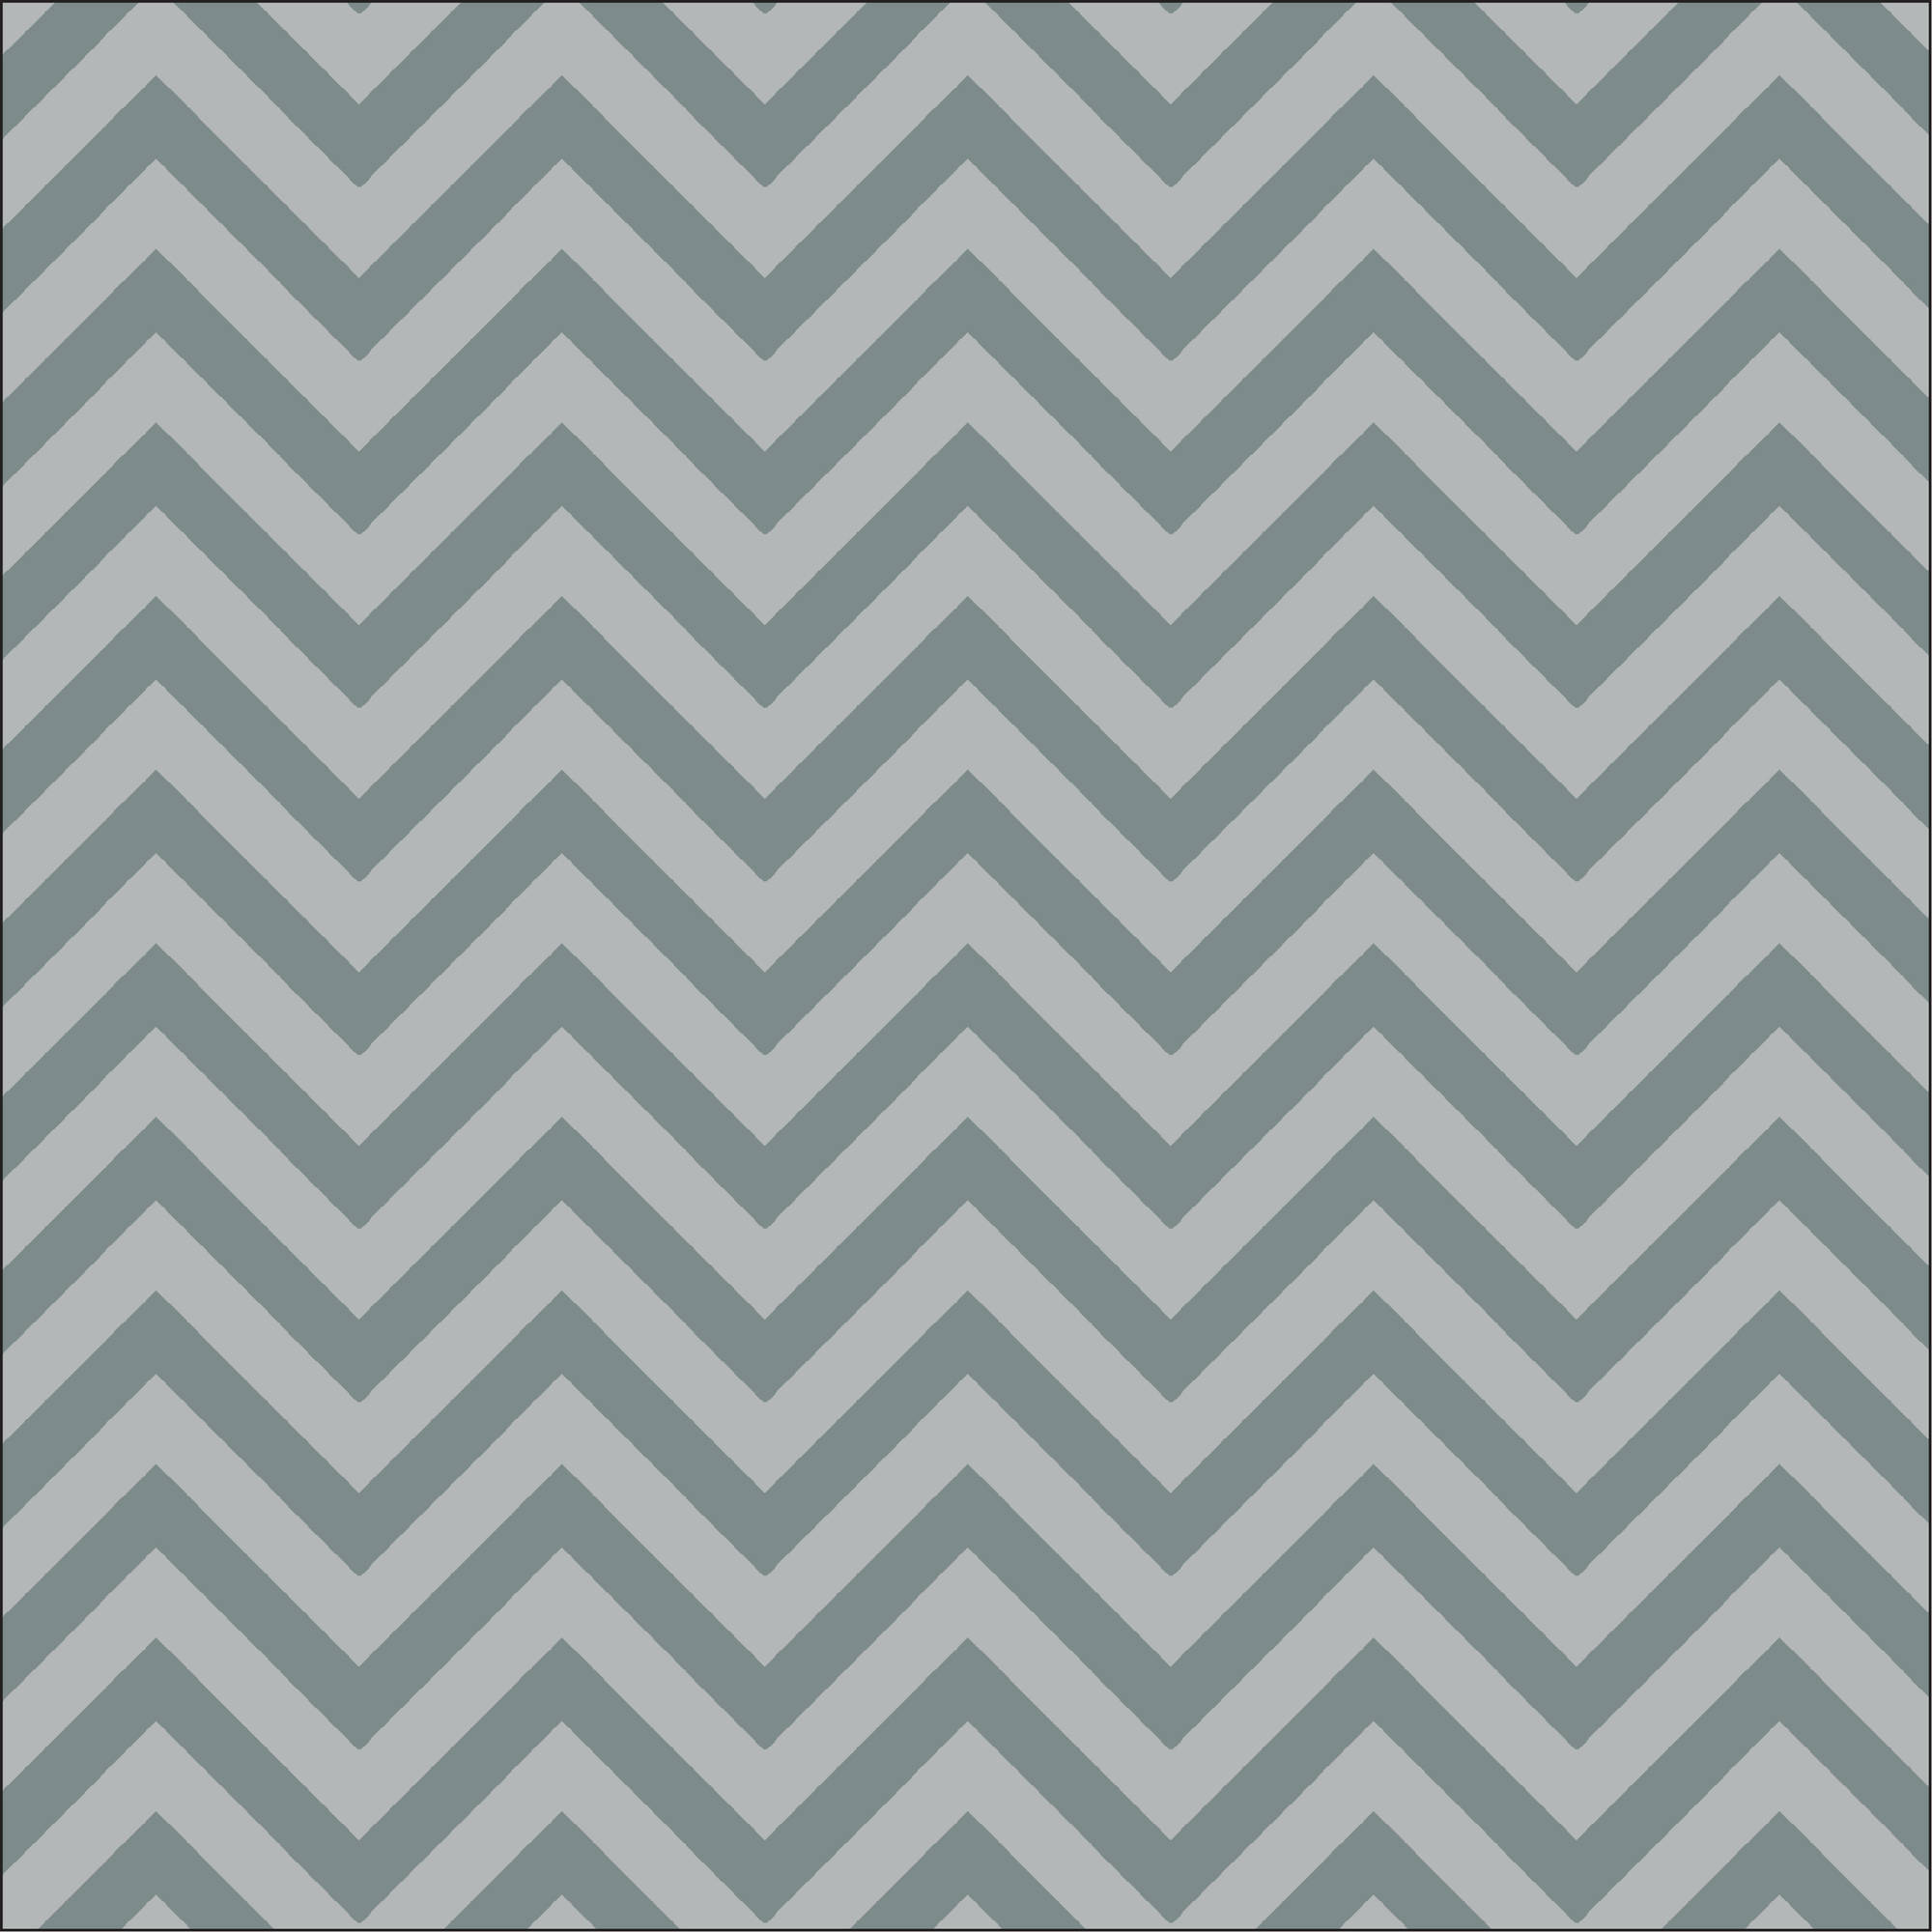 Waverly Inspirations ZIGZAG STEEL 100% Cotton Print fabric, Quilting fabric, Home Decor ,44'', 140GSM